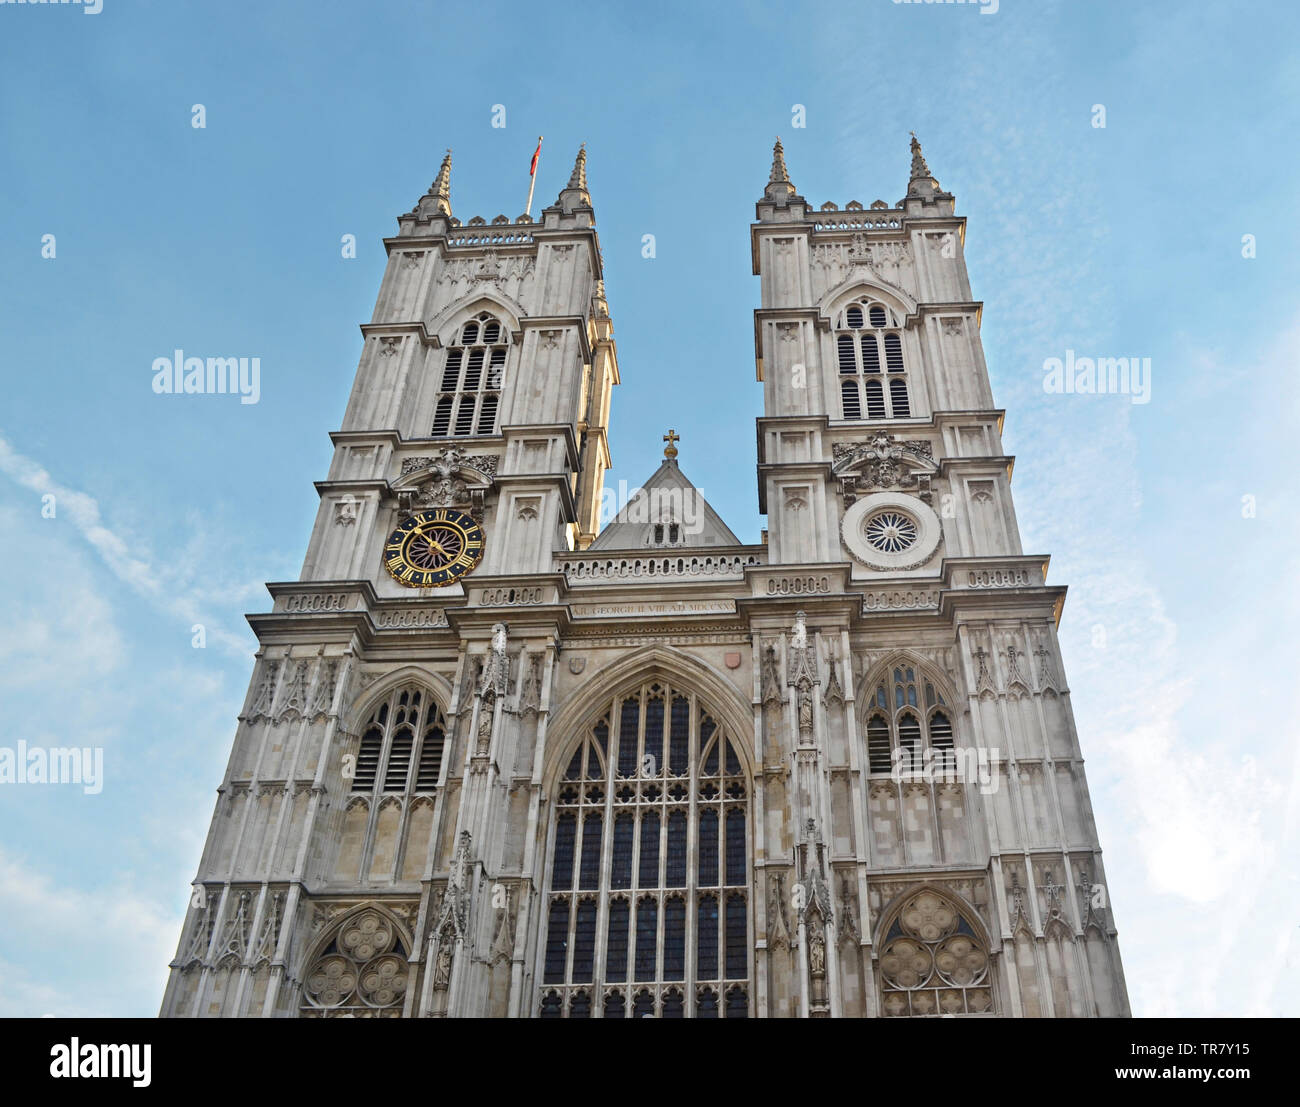 Westminster Abbey is a church in London. It is located in the City of Westminster west of the Palace of Westminster. Stock Photo